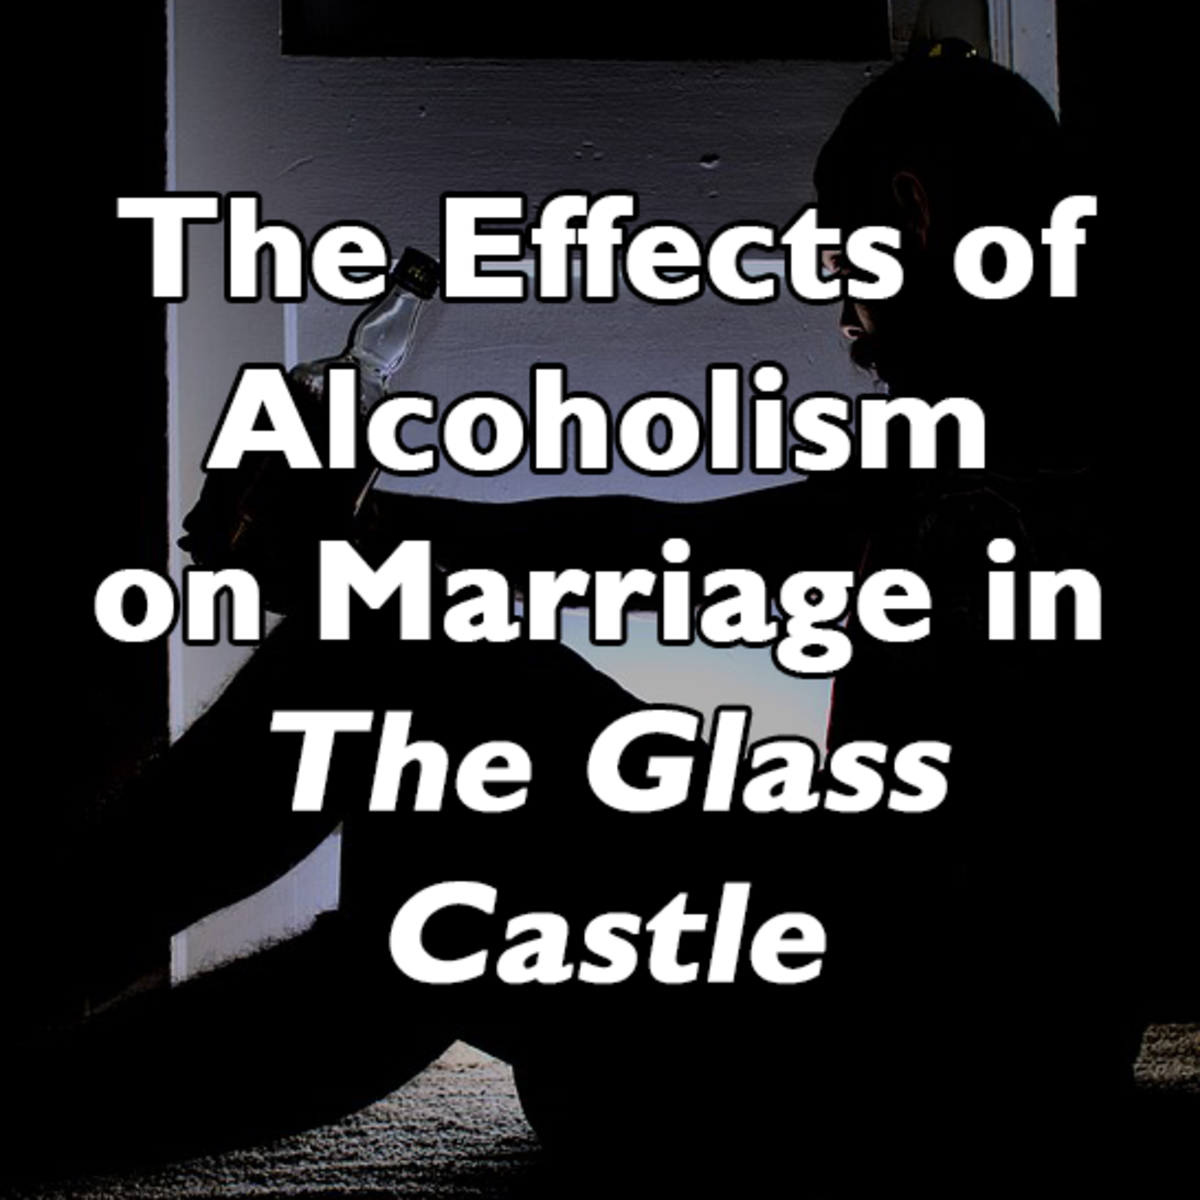 Alcoholism has a devastating effect on marriage and the family in the memoir The Glass Castle by Jeanette Wells.